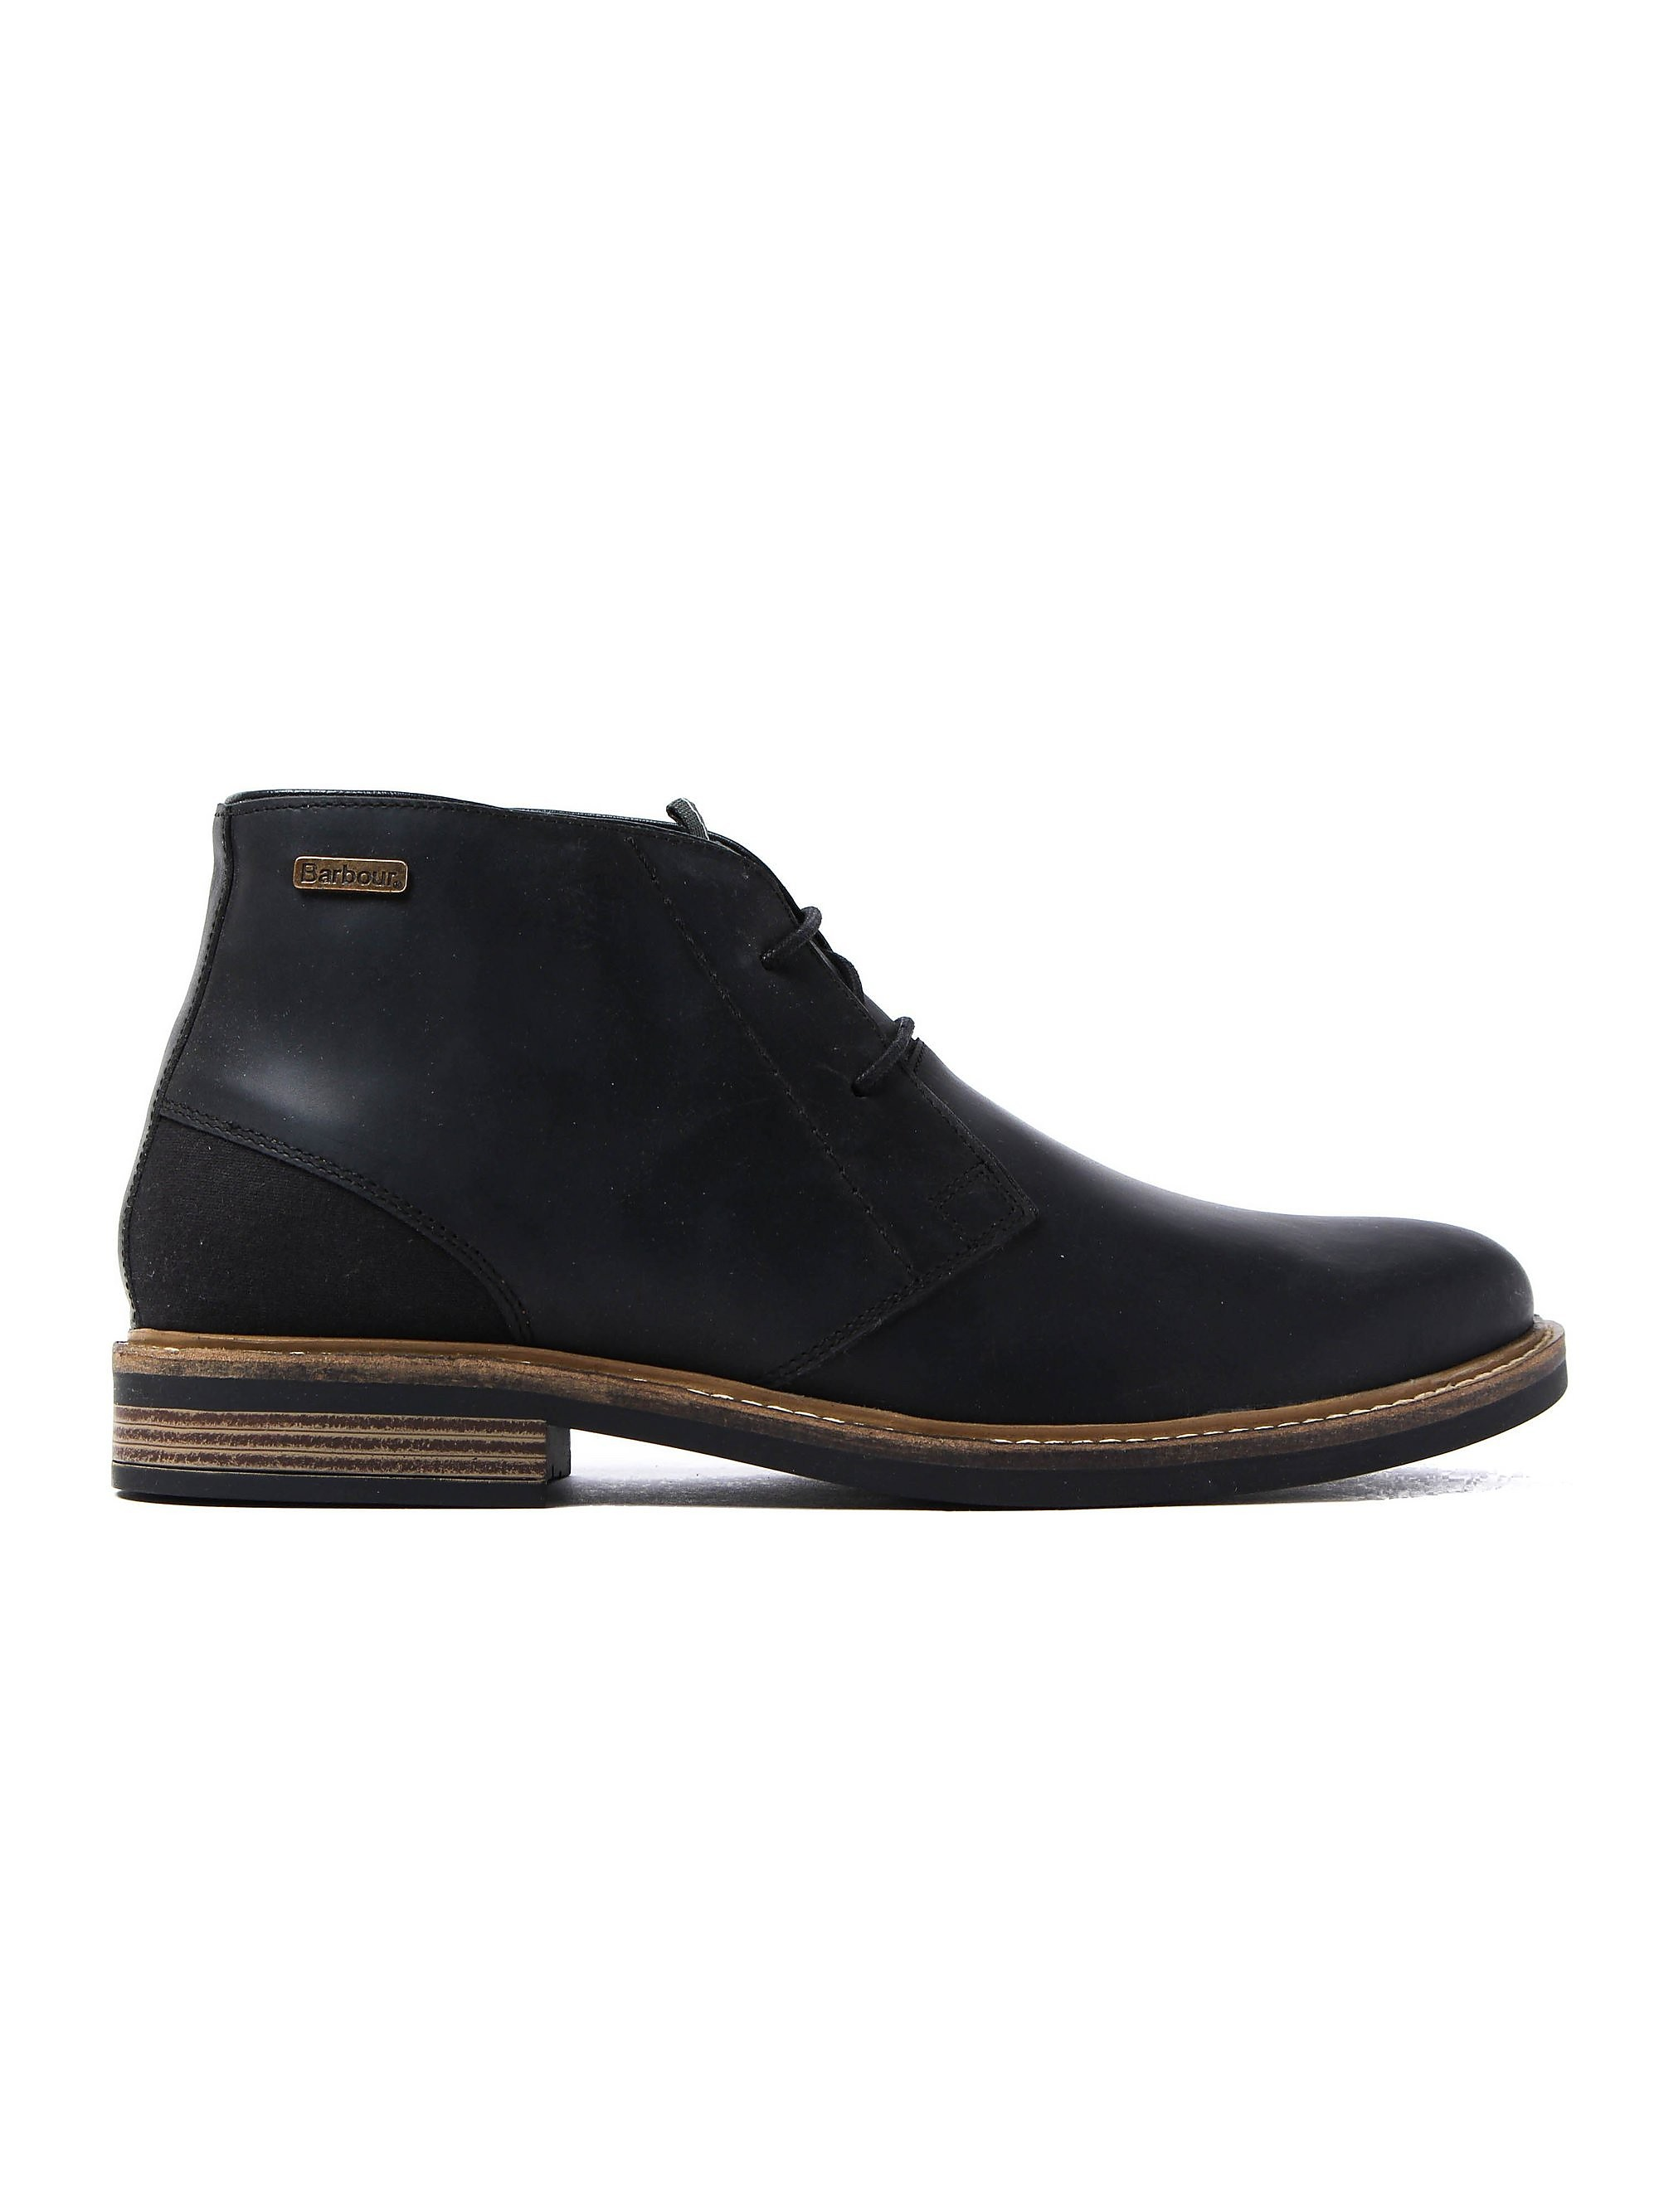 Barbour Men's Readhead Classic 2 Eyelet Chukka Boots - Black